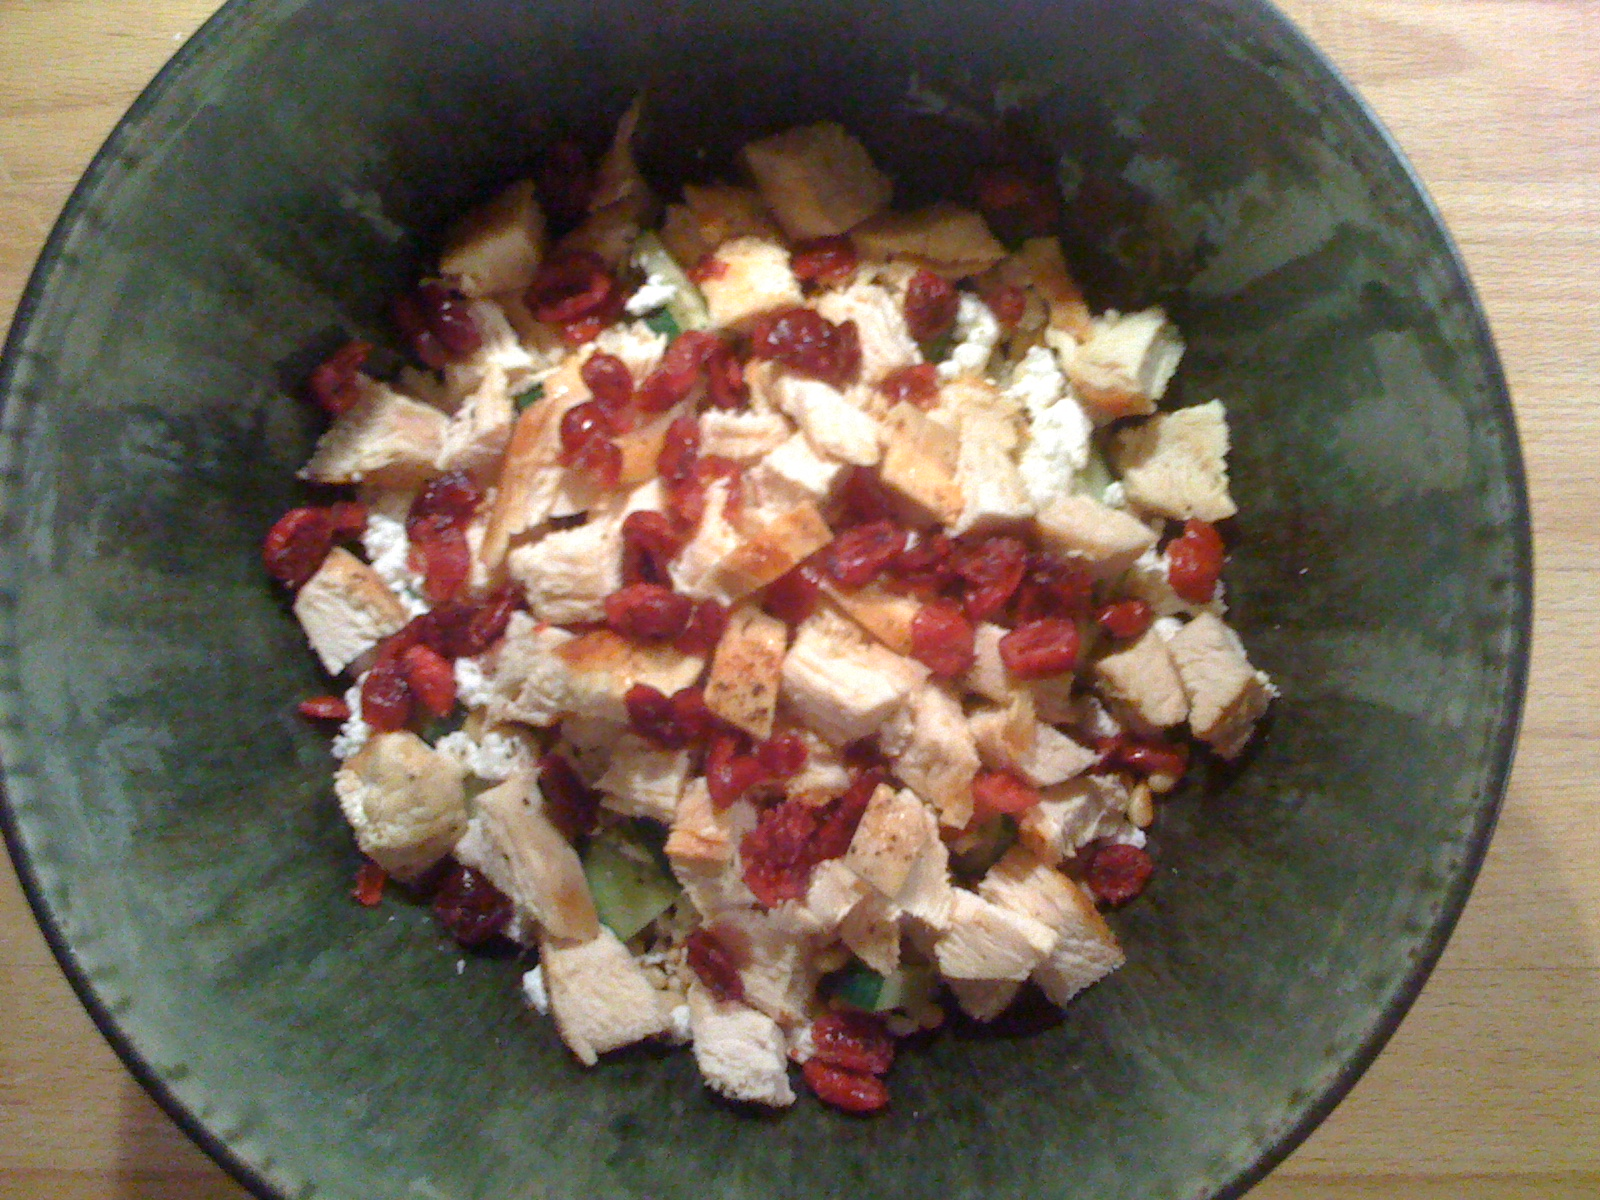 Cucumbers + Pine nuts + Goat Cheese + Chicken + Cranberries